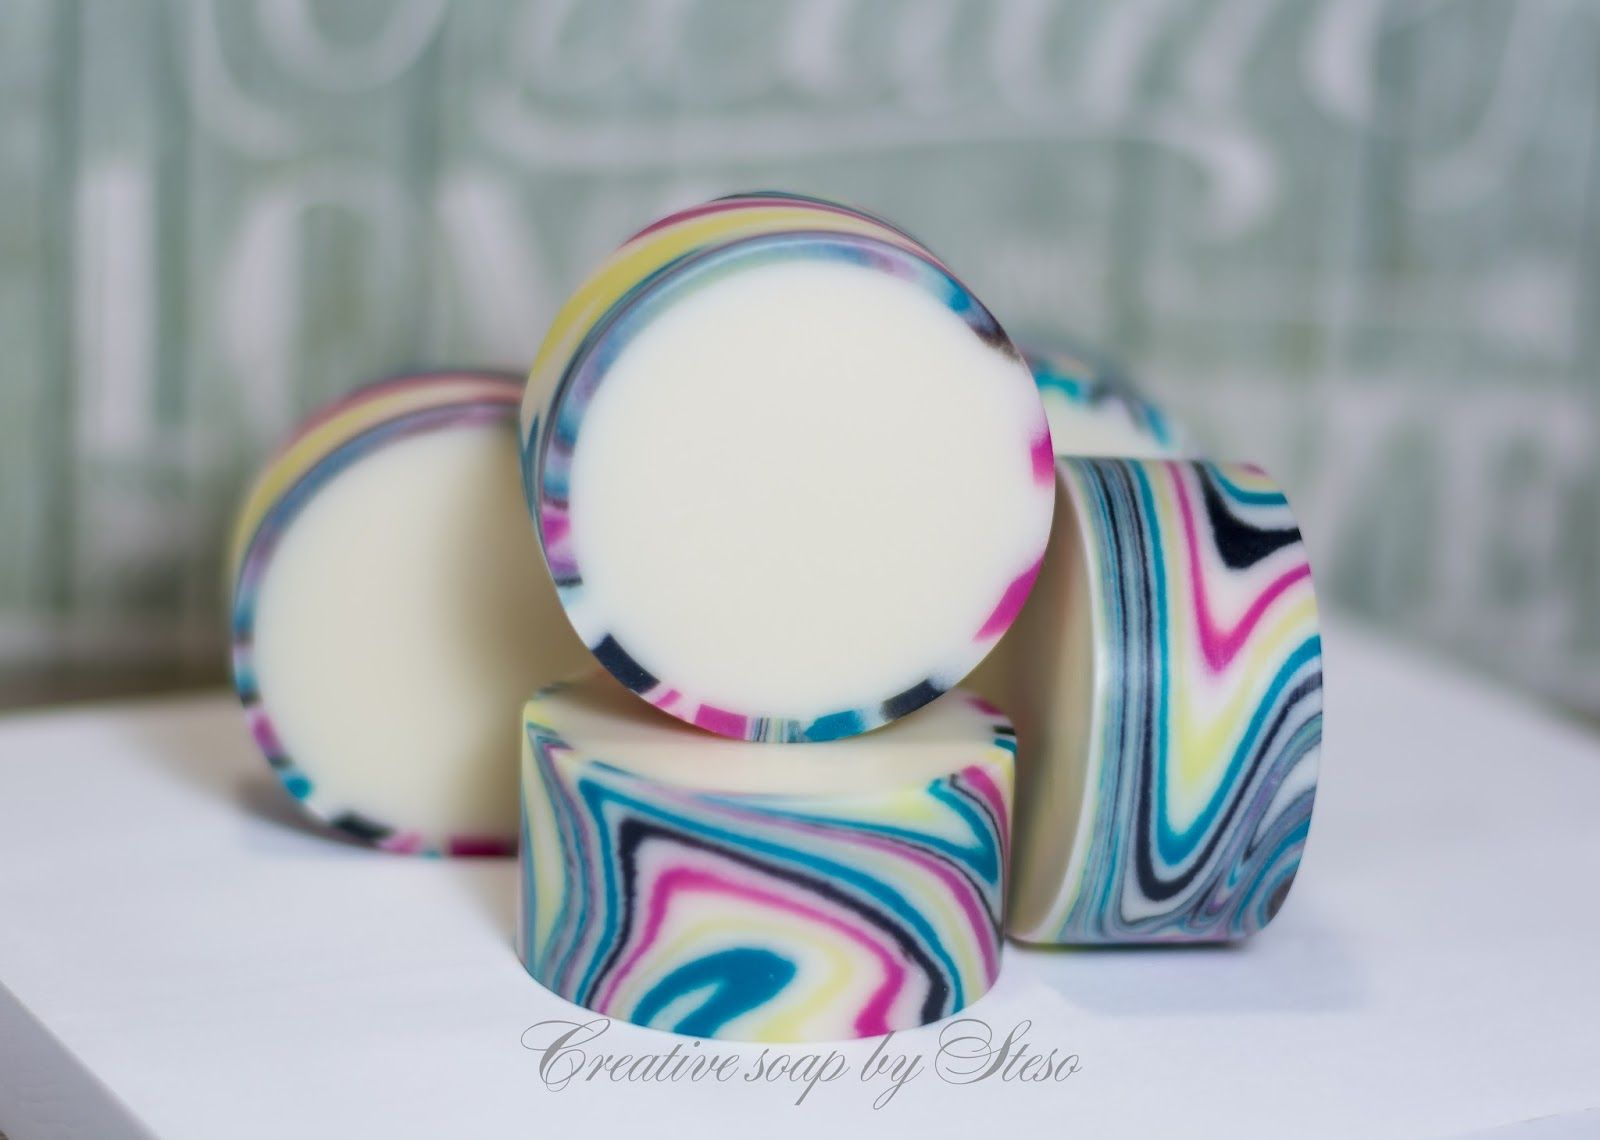 Rimmed soap. CP